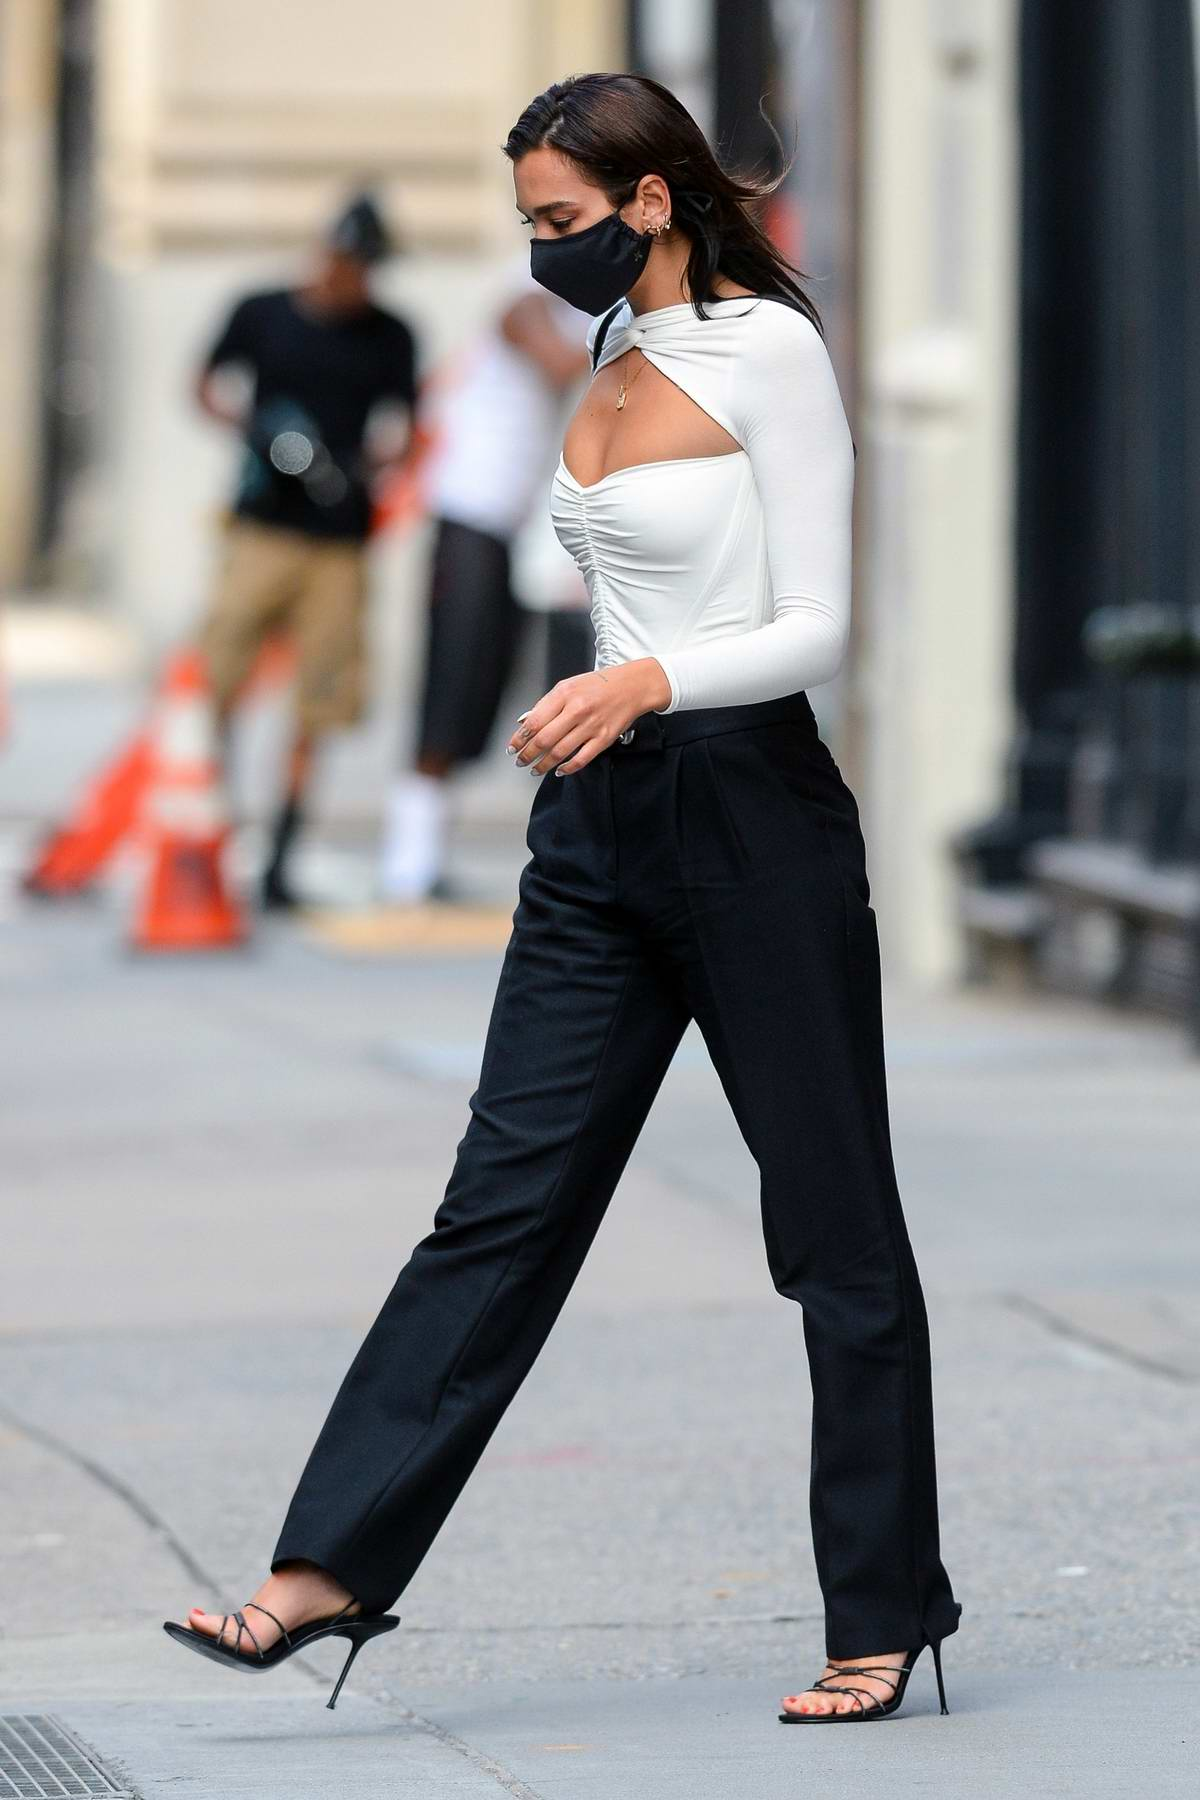 Dua Lipa sports a monochrome look as she steps out in the Greenwich Village of Manhattan in New York City